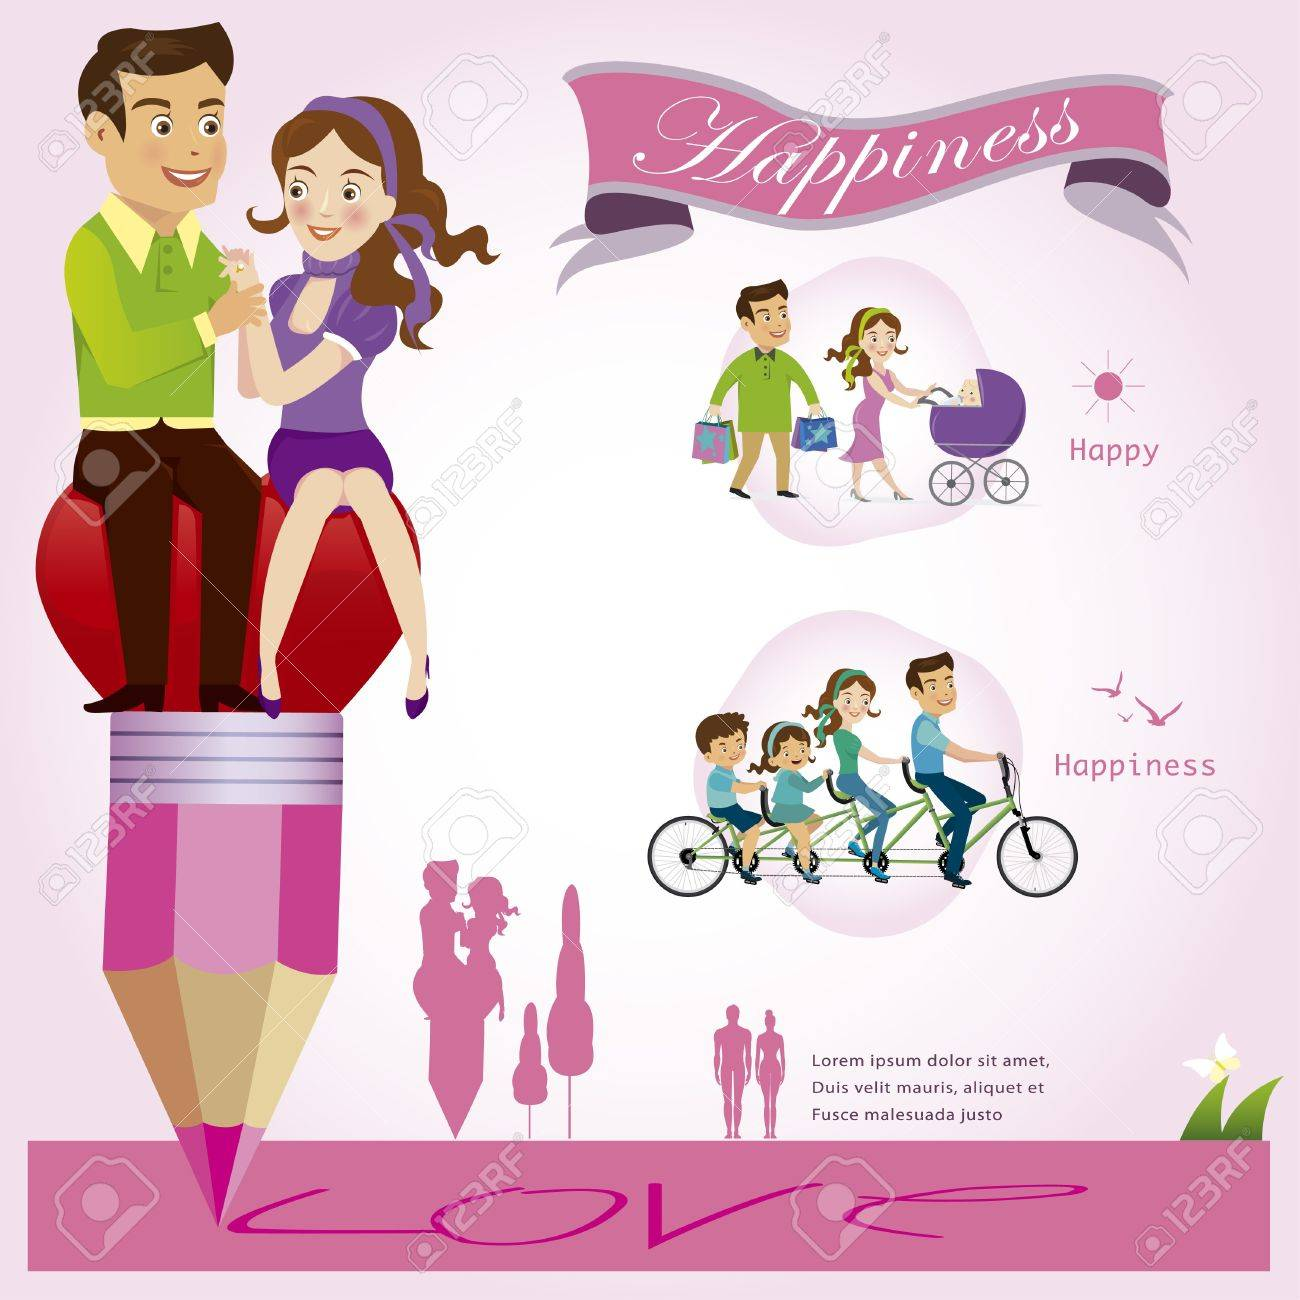 Couples illustration Stock Vector - 21811444